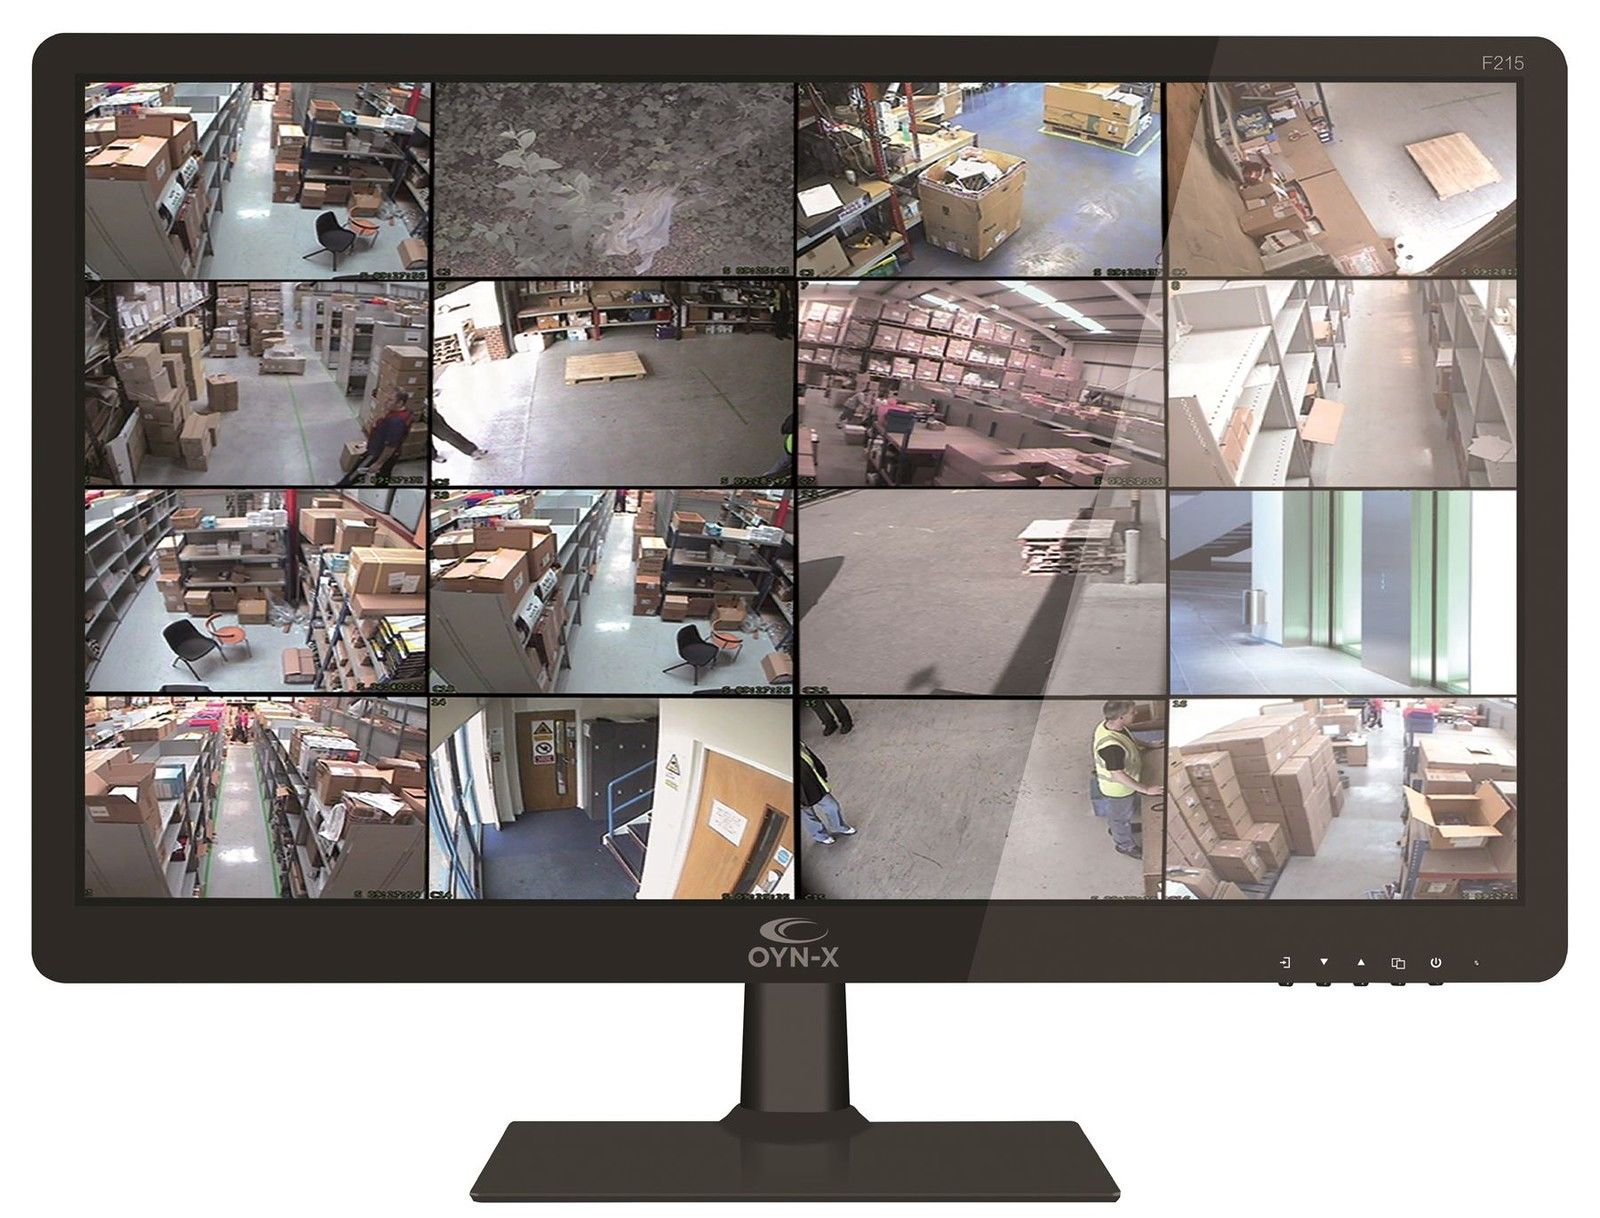 "OYN-X CCTV Security Monitor 21"" TFT LED HDMI BNC VGA Inputs & 16:9 Screen 1080P"